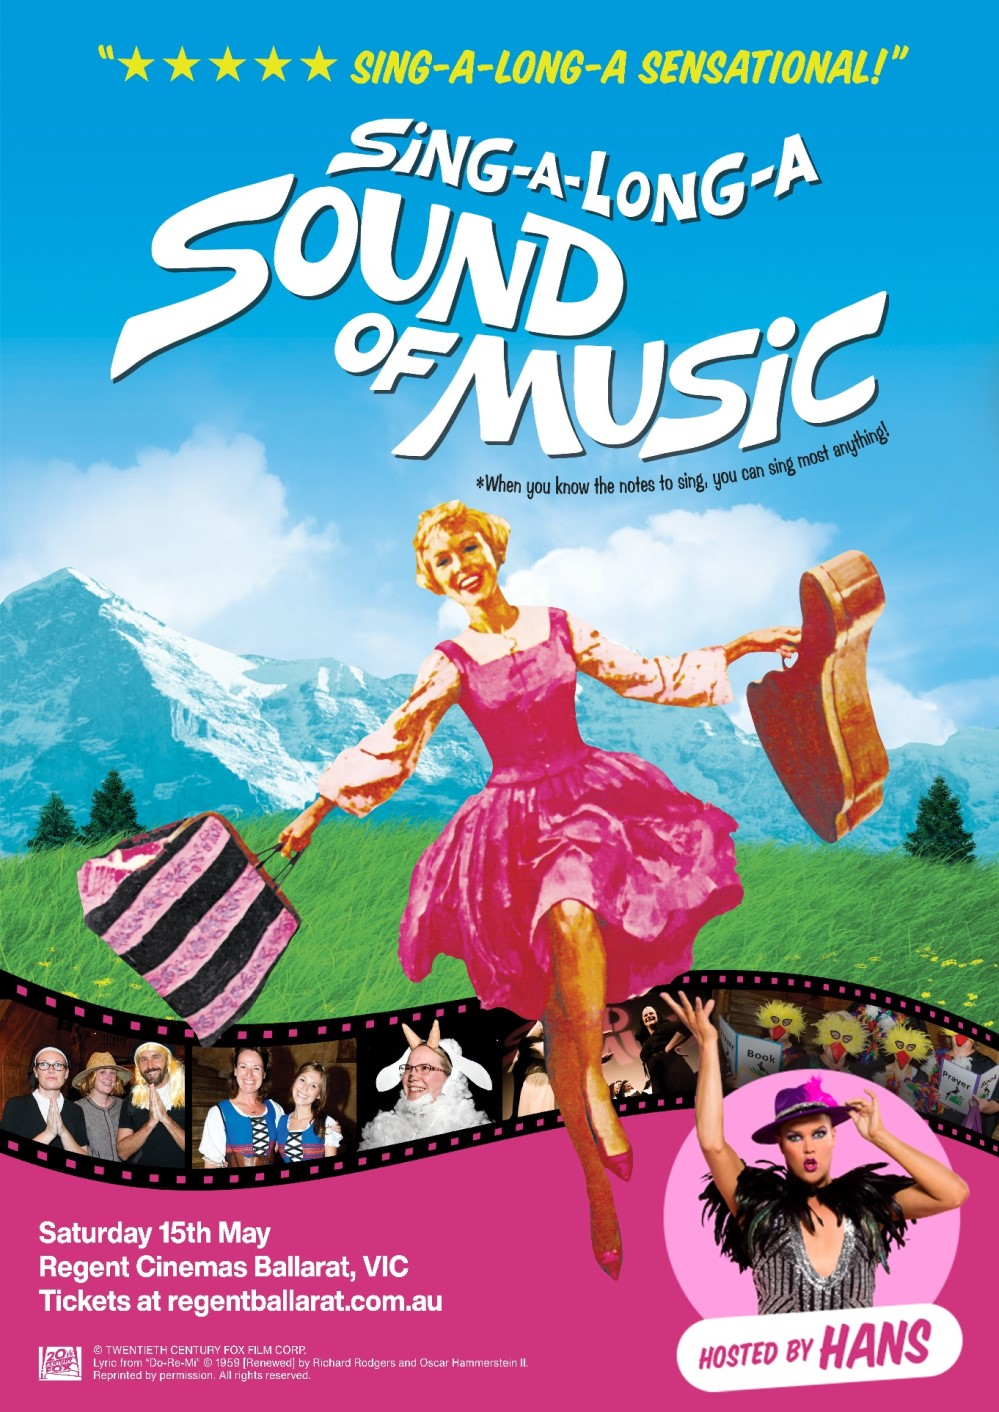 Sing-A-Long-A Sound Of Music Hosted by Hans